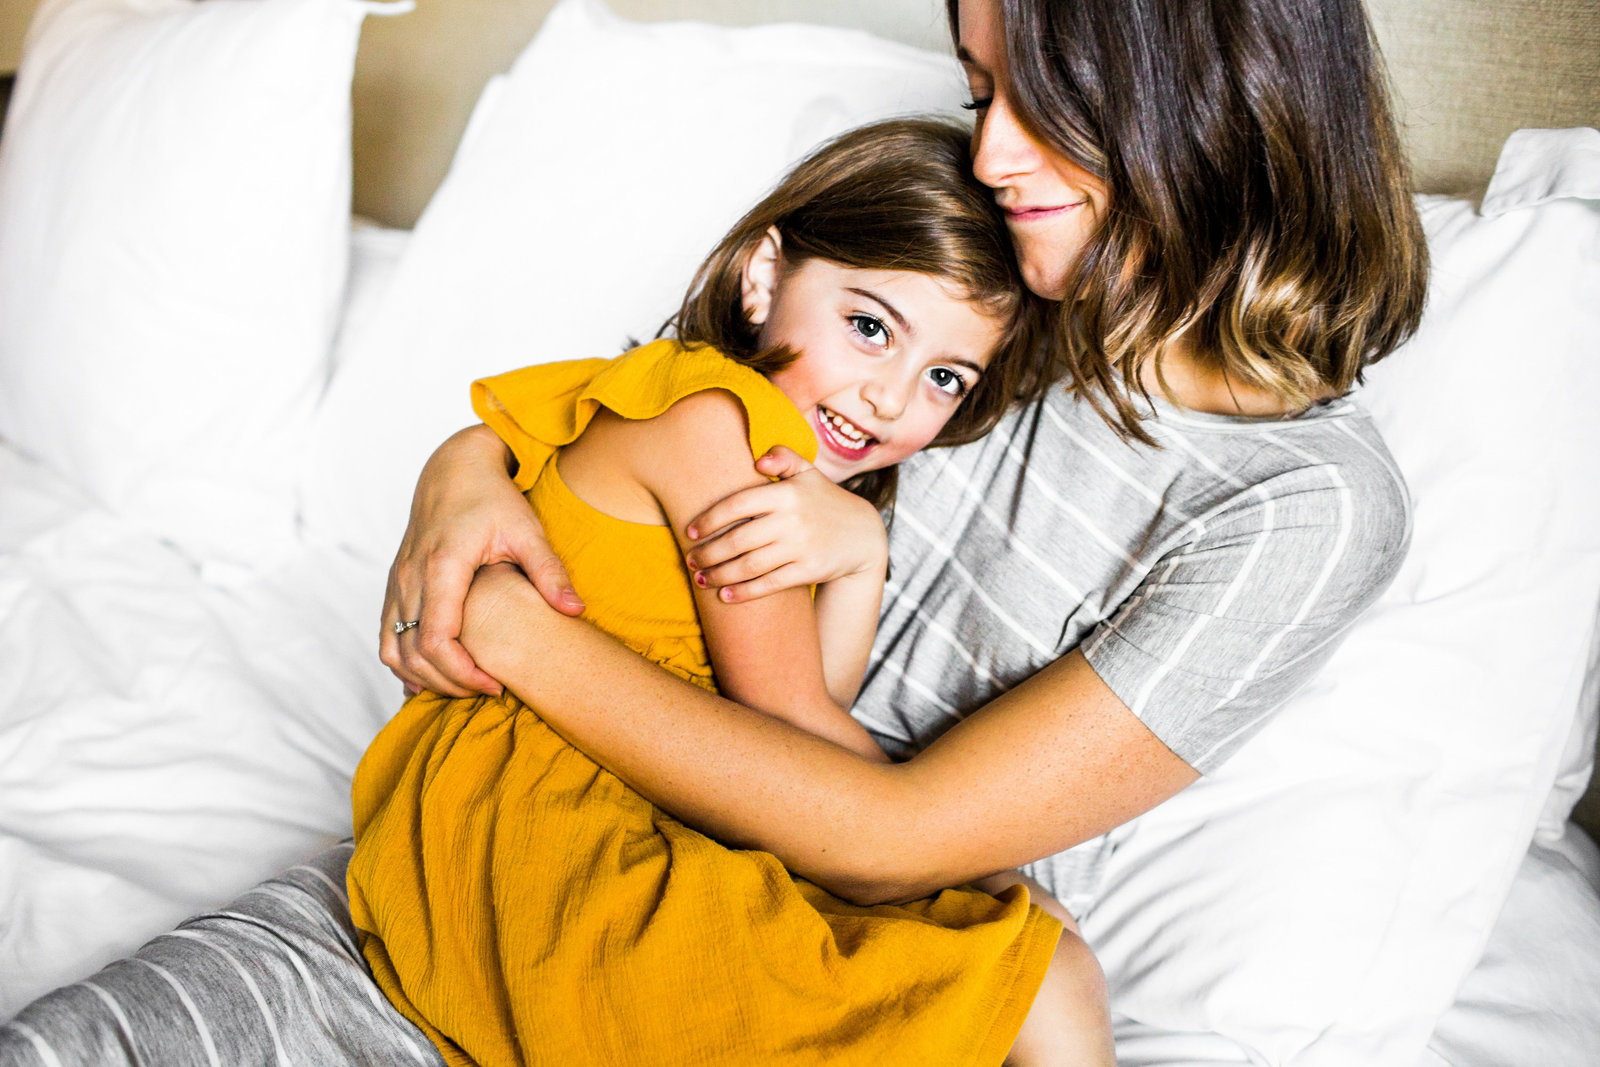 Mom snuggling with her daughter at home in bed